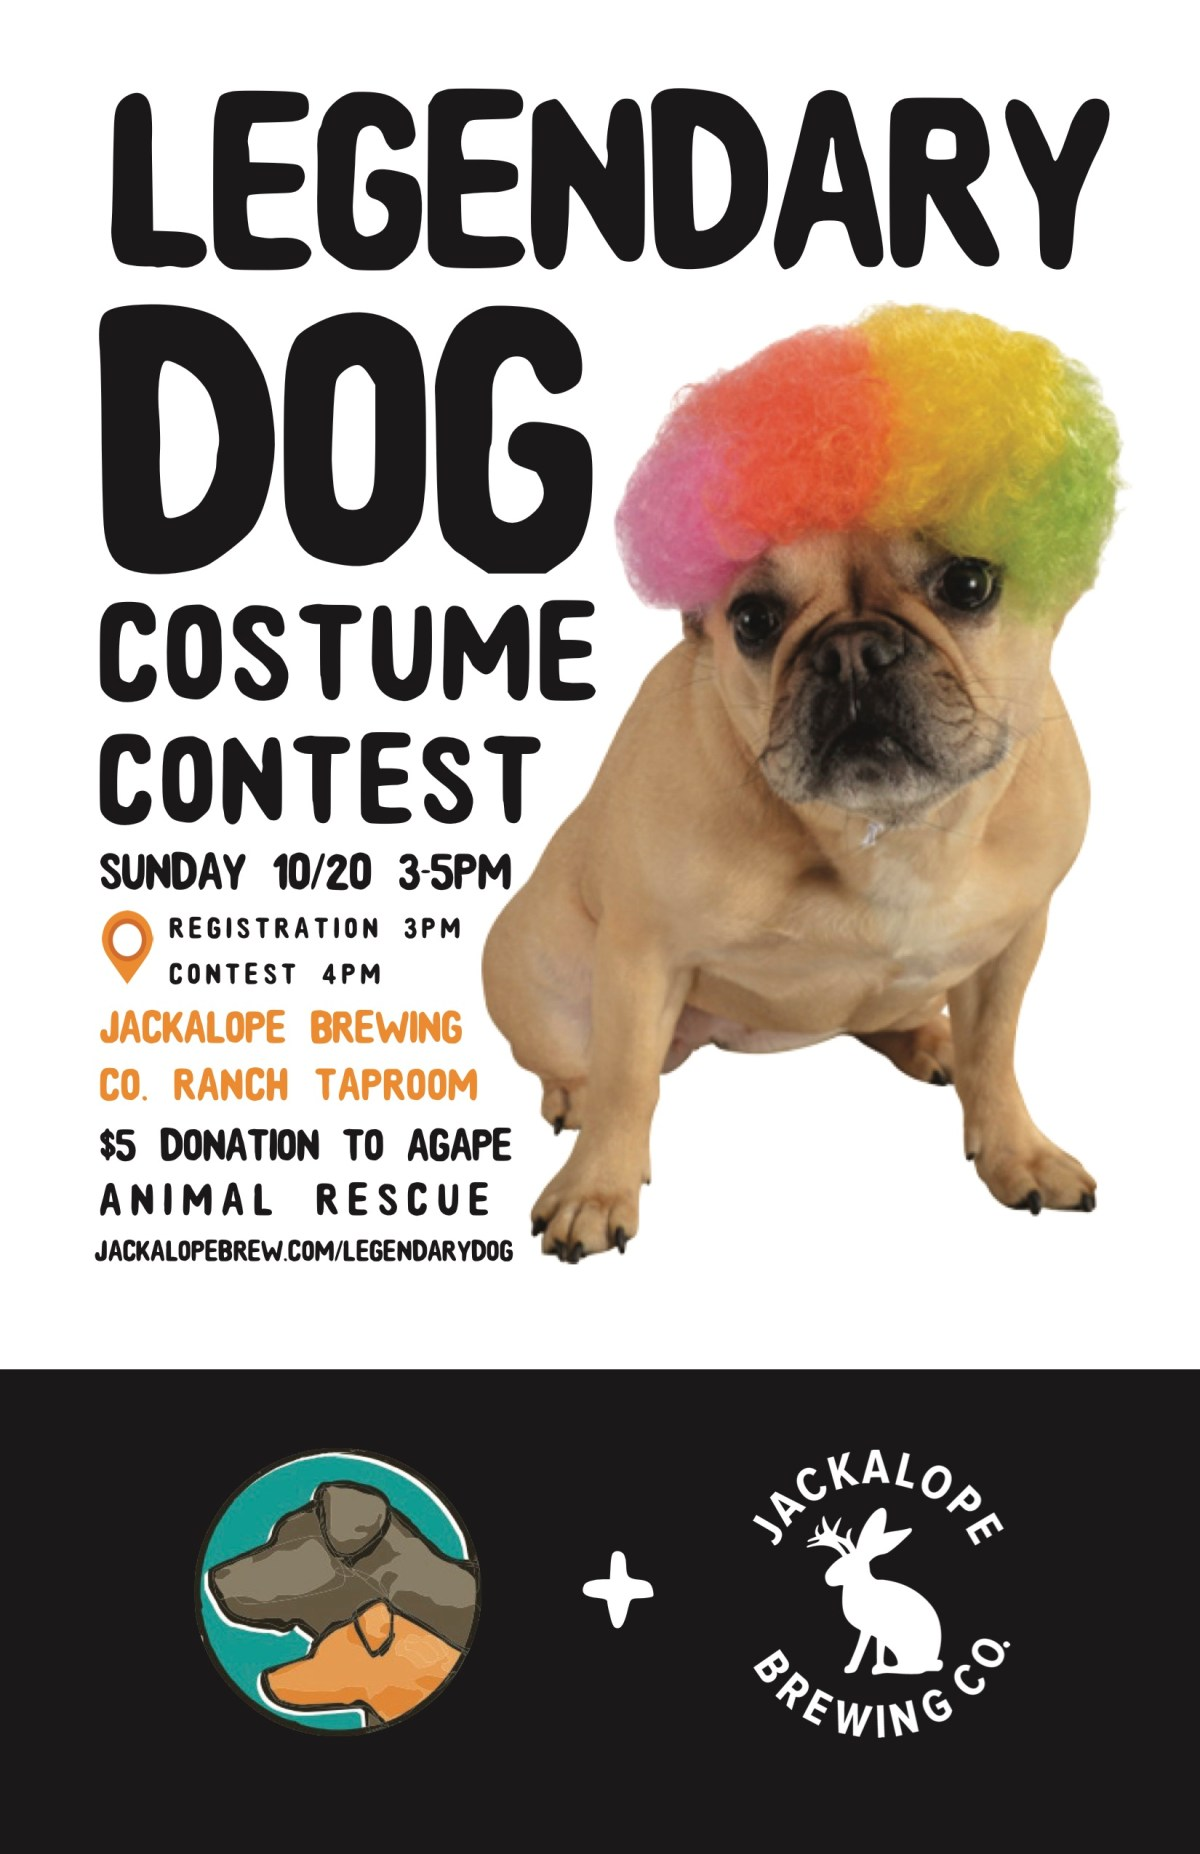 https://i0.wp.com/jackalopebrew.com/wp-content/uploads/2019/09/Legendary-Dog-Costume-Contest.jpg?fit=1200%2C1854&ssl=1